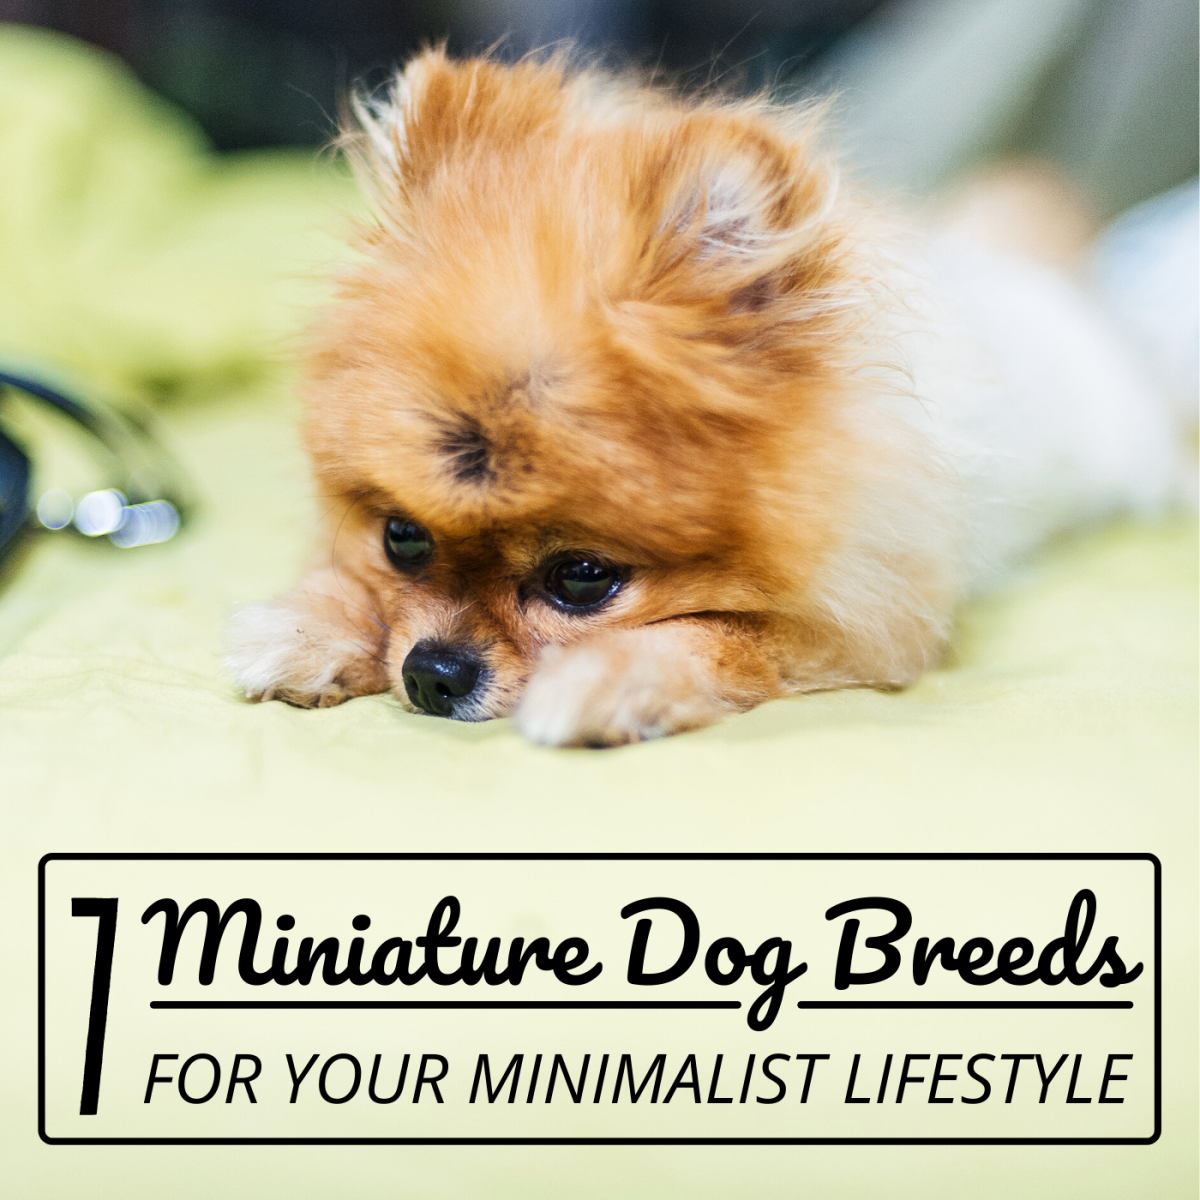 These seven small dogs are perfect for those seeking an adorable miniature companion.